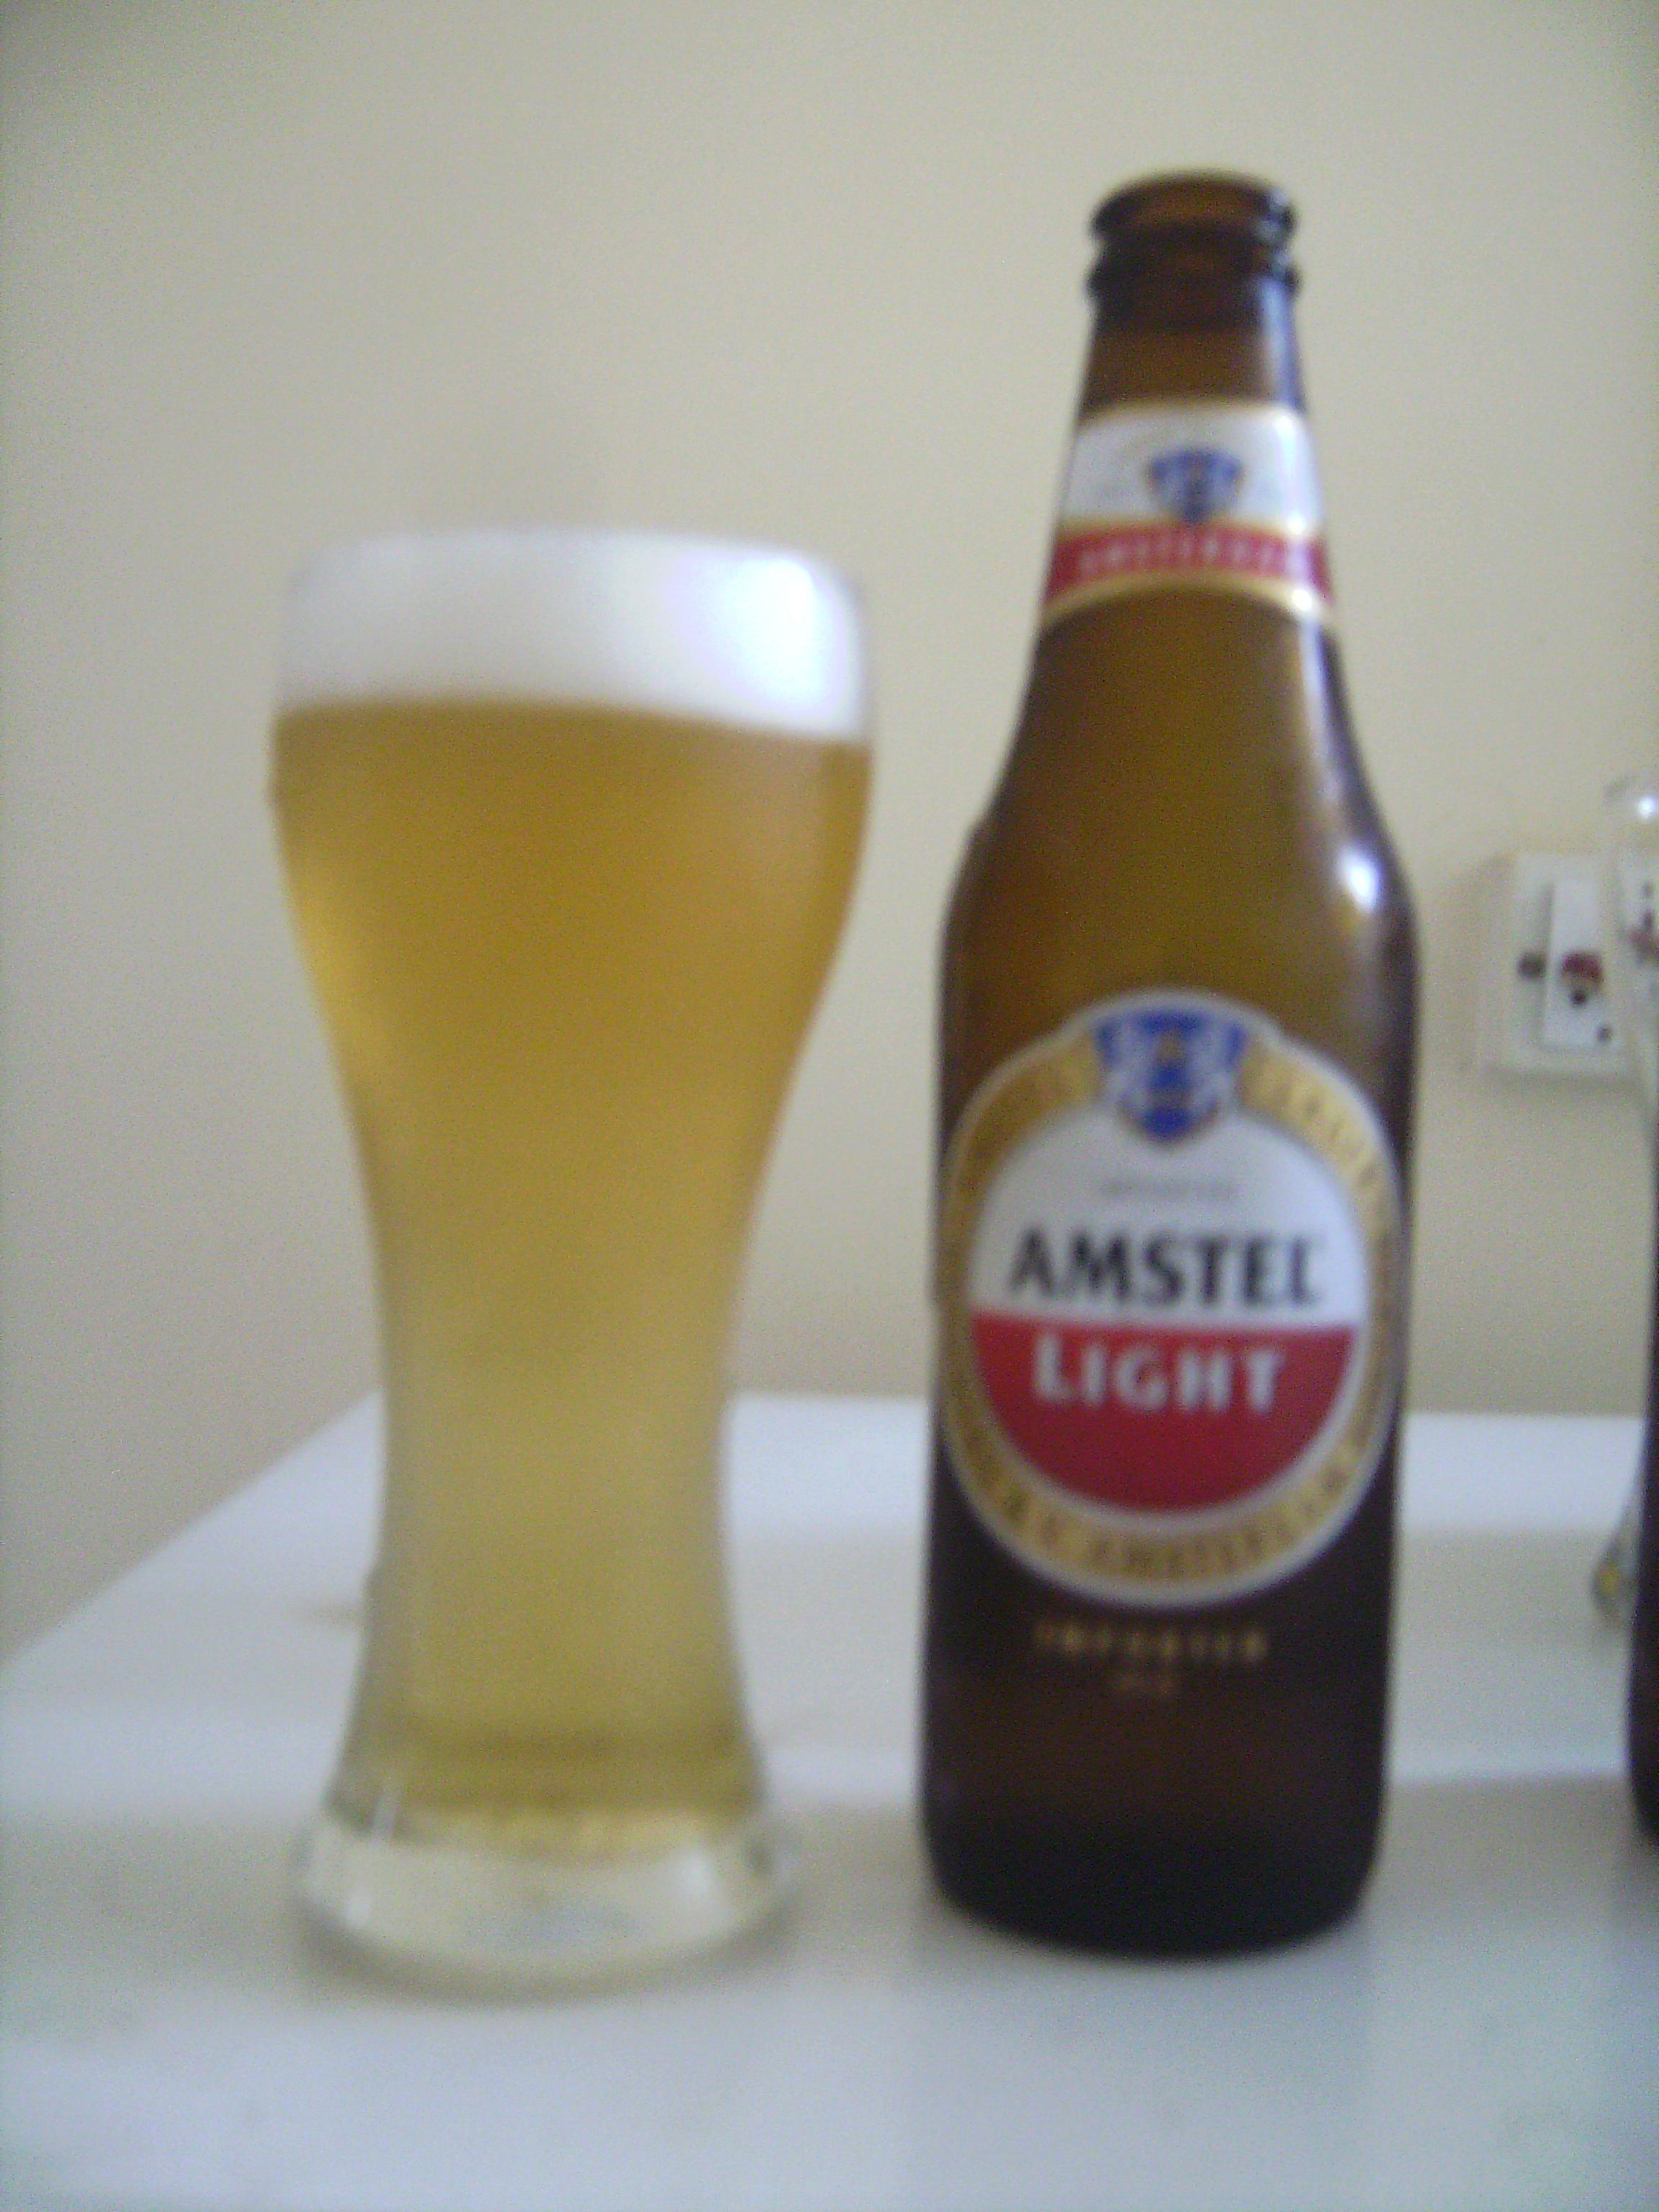 With An Alcohol Volume Of 3.5% And Not Much Else Going For It, Amstel Light  Barely Has Any Smell Or Taste. Itu0027s Not Bad But Why Would Anyone Want To  Drink A ...